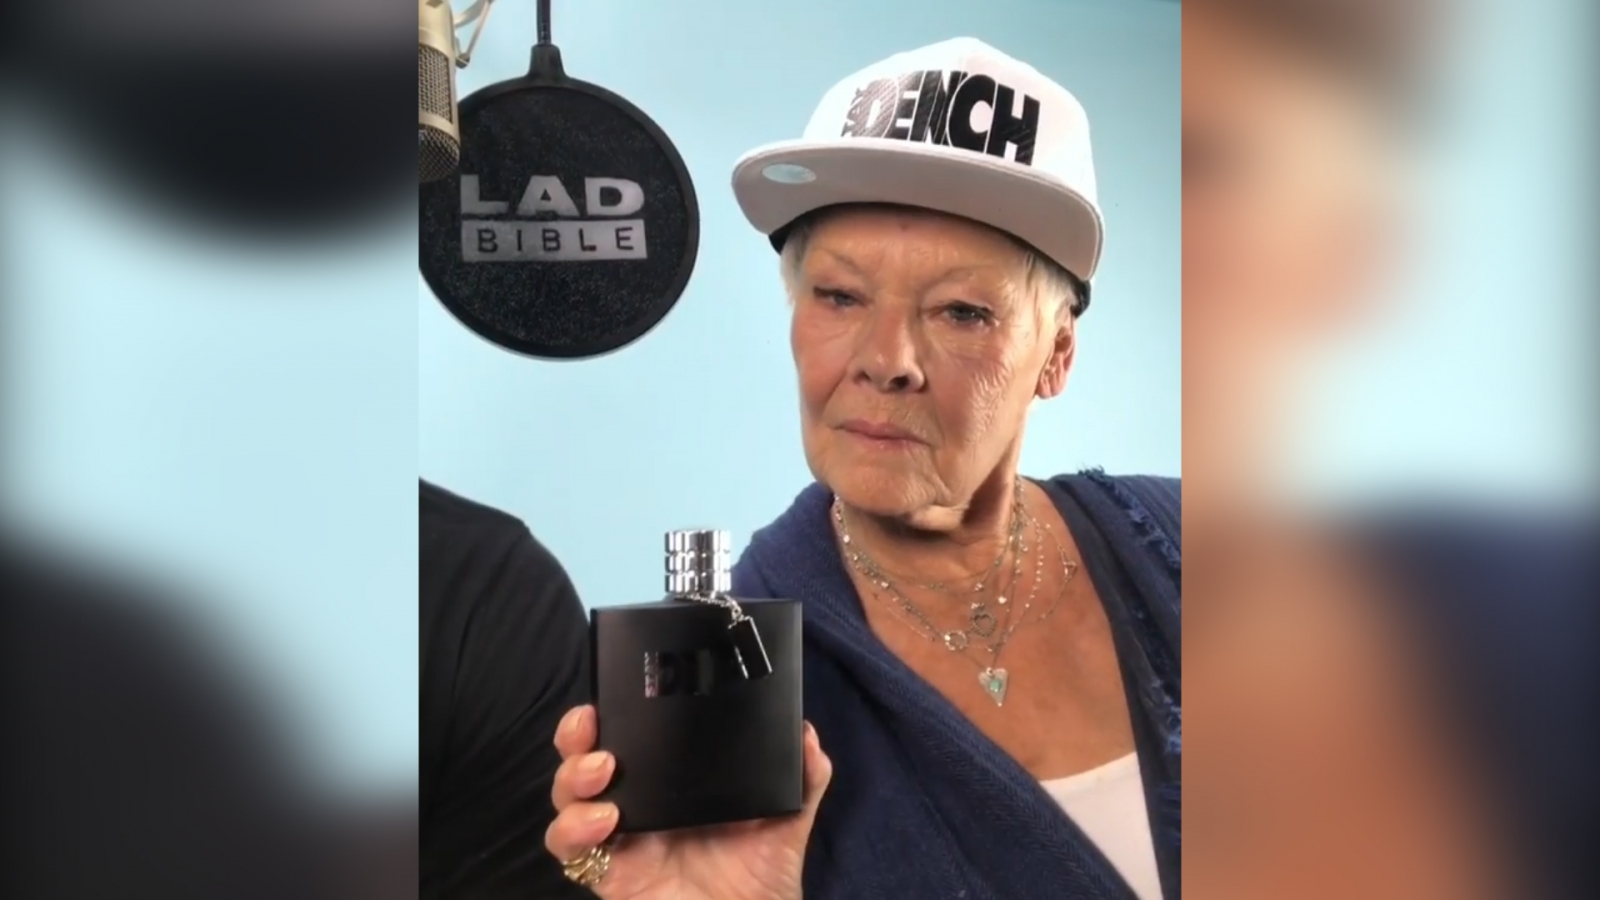 lethal-bizzle-and-judy-dench-team-up-in-instagram-video